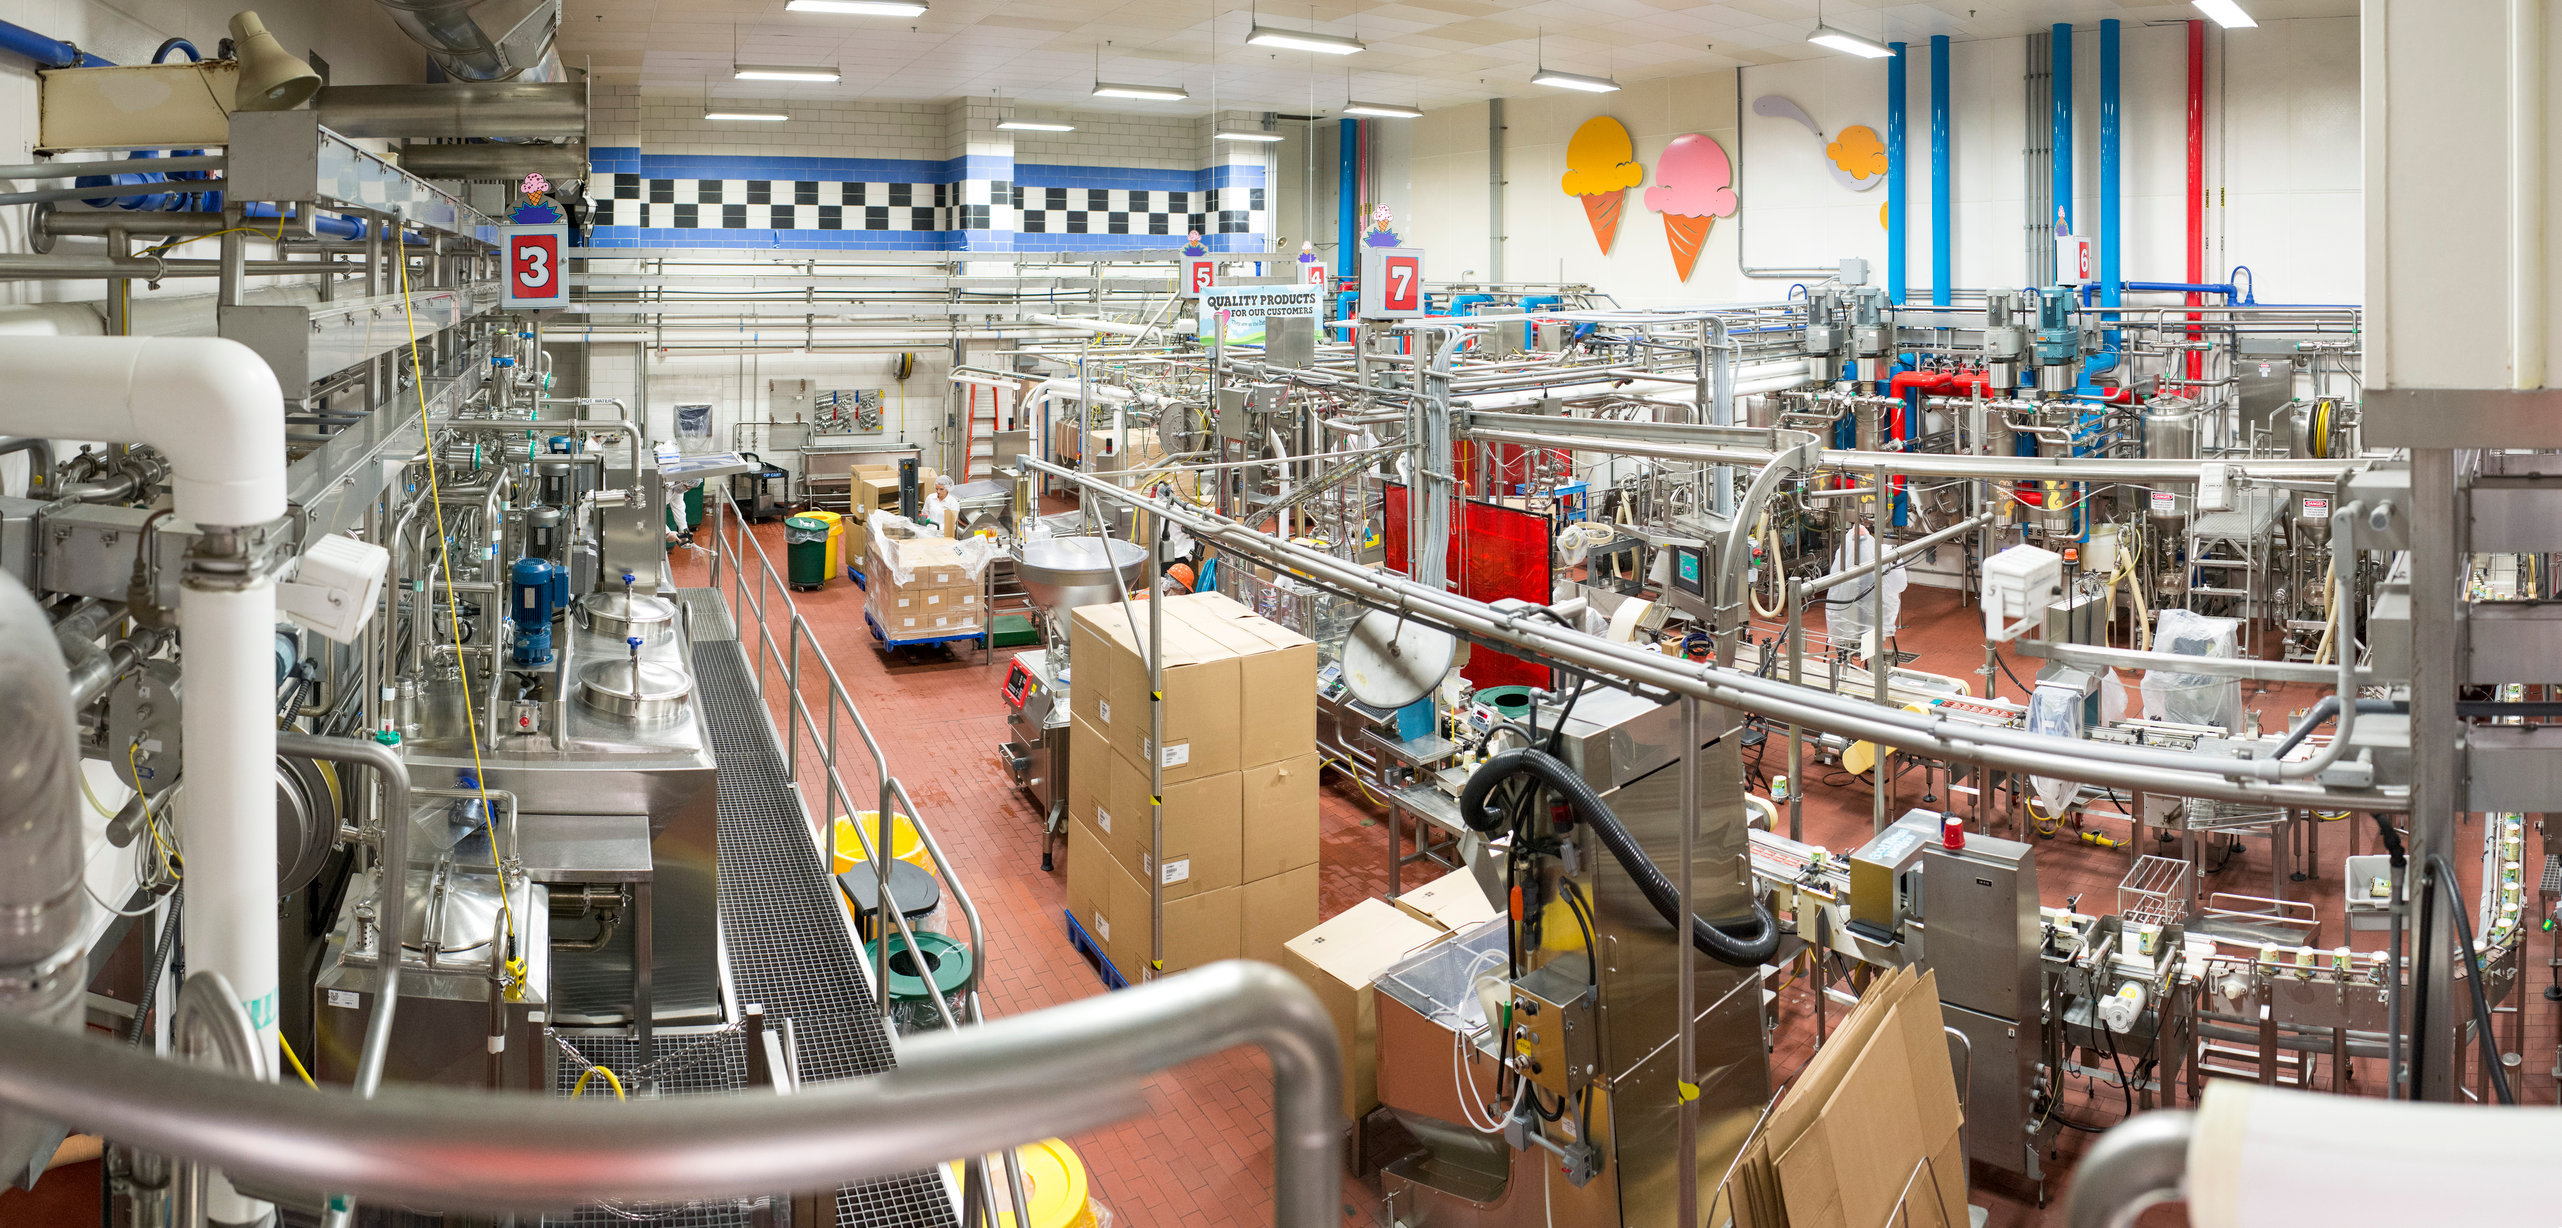 130729_FactoryDetail_Panorama.jpg